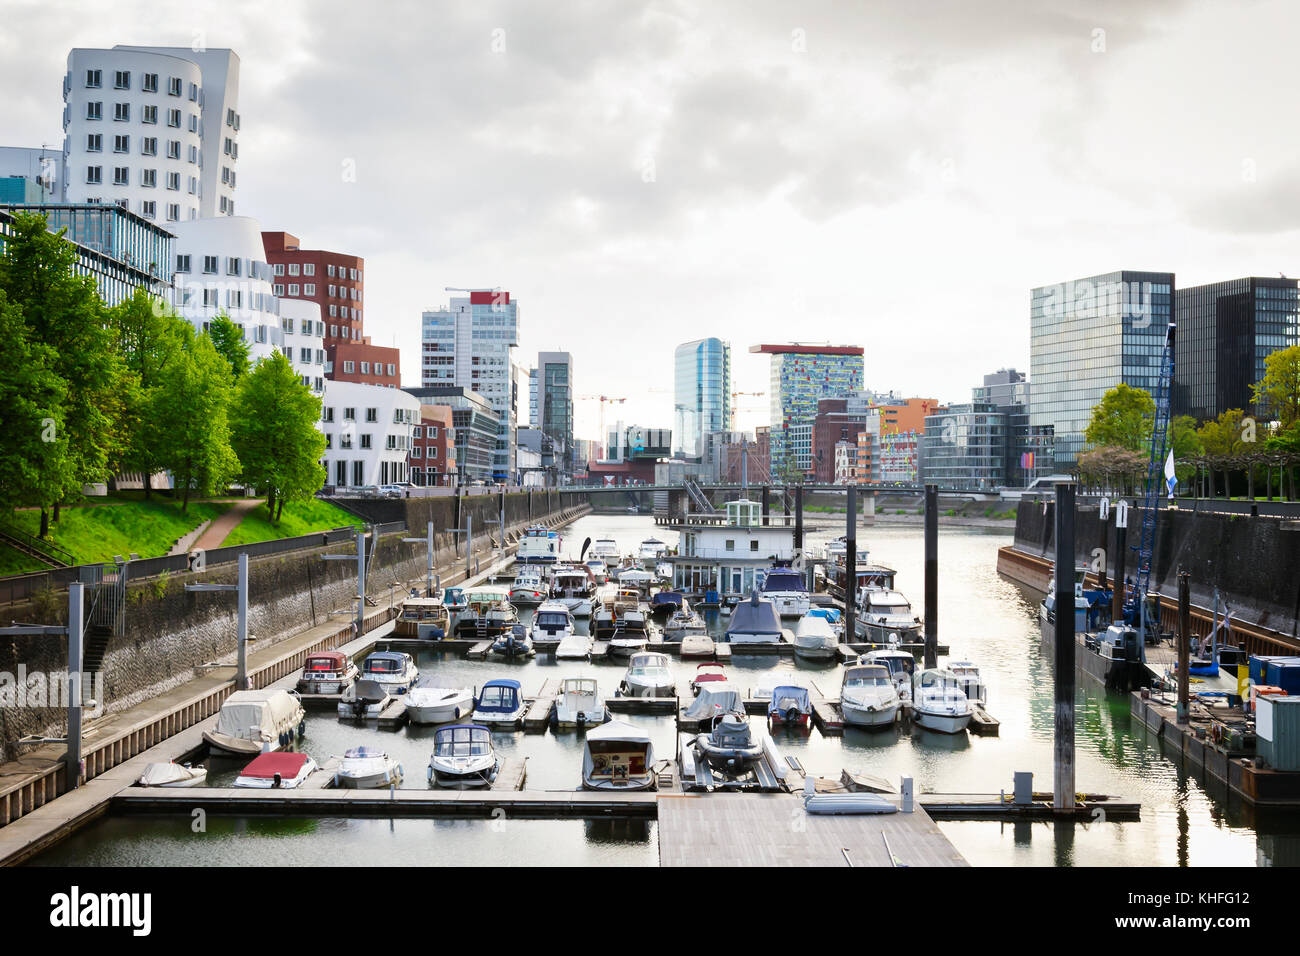 Cloudy day in Dusseldorf's harbour. Cityscape view on Medienhafen full of boats - Stock Image